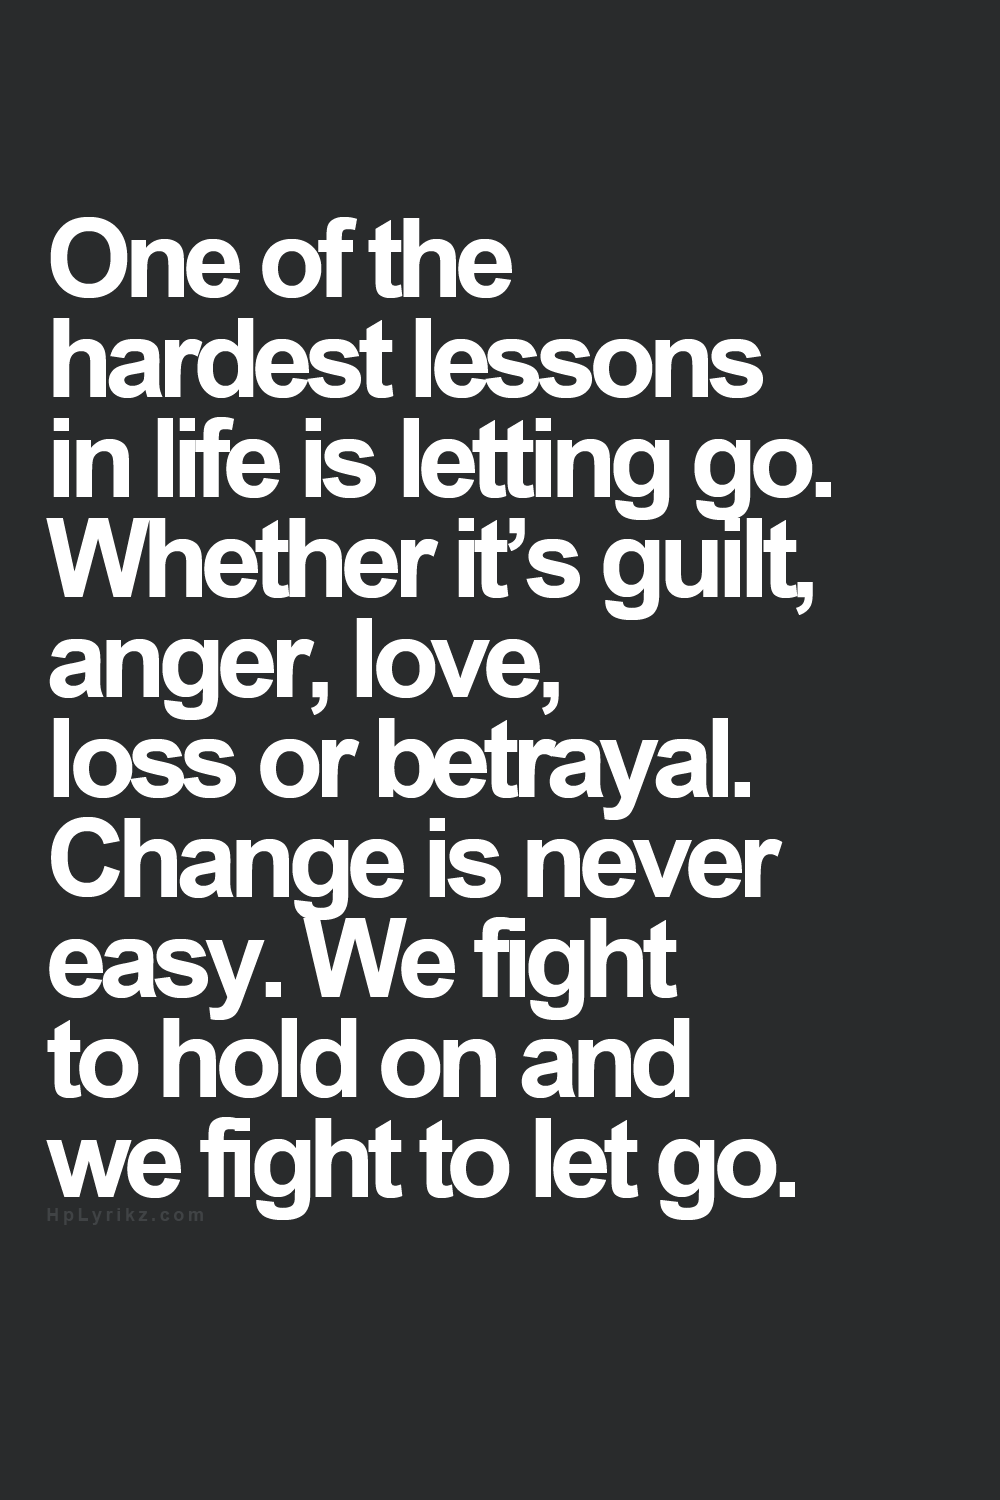 Thats why youll be happy when you let go